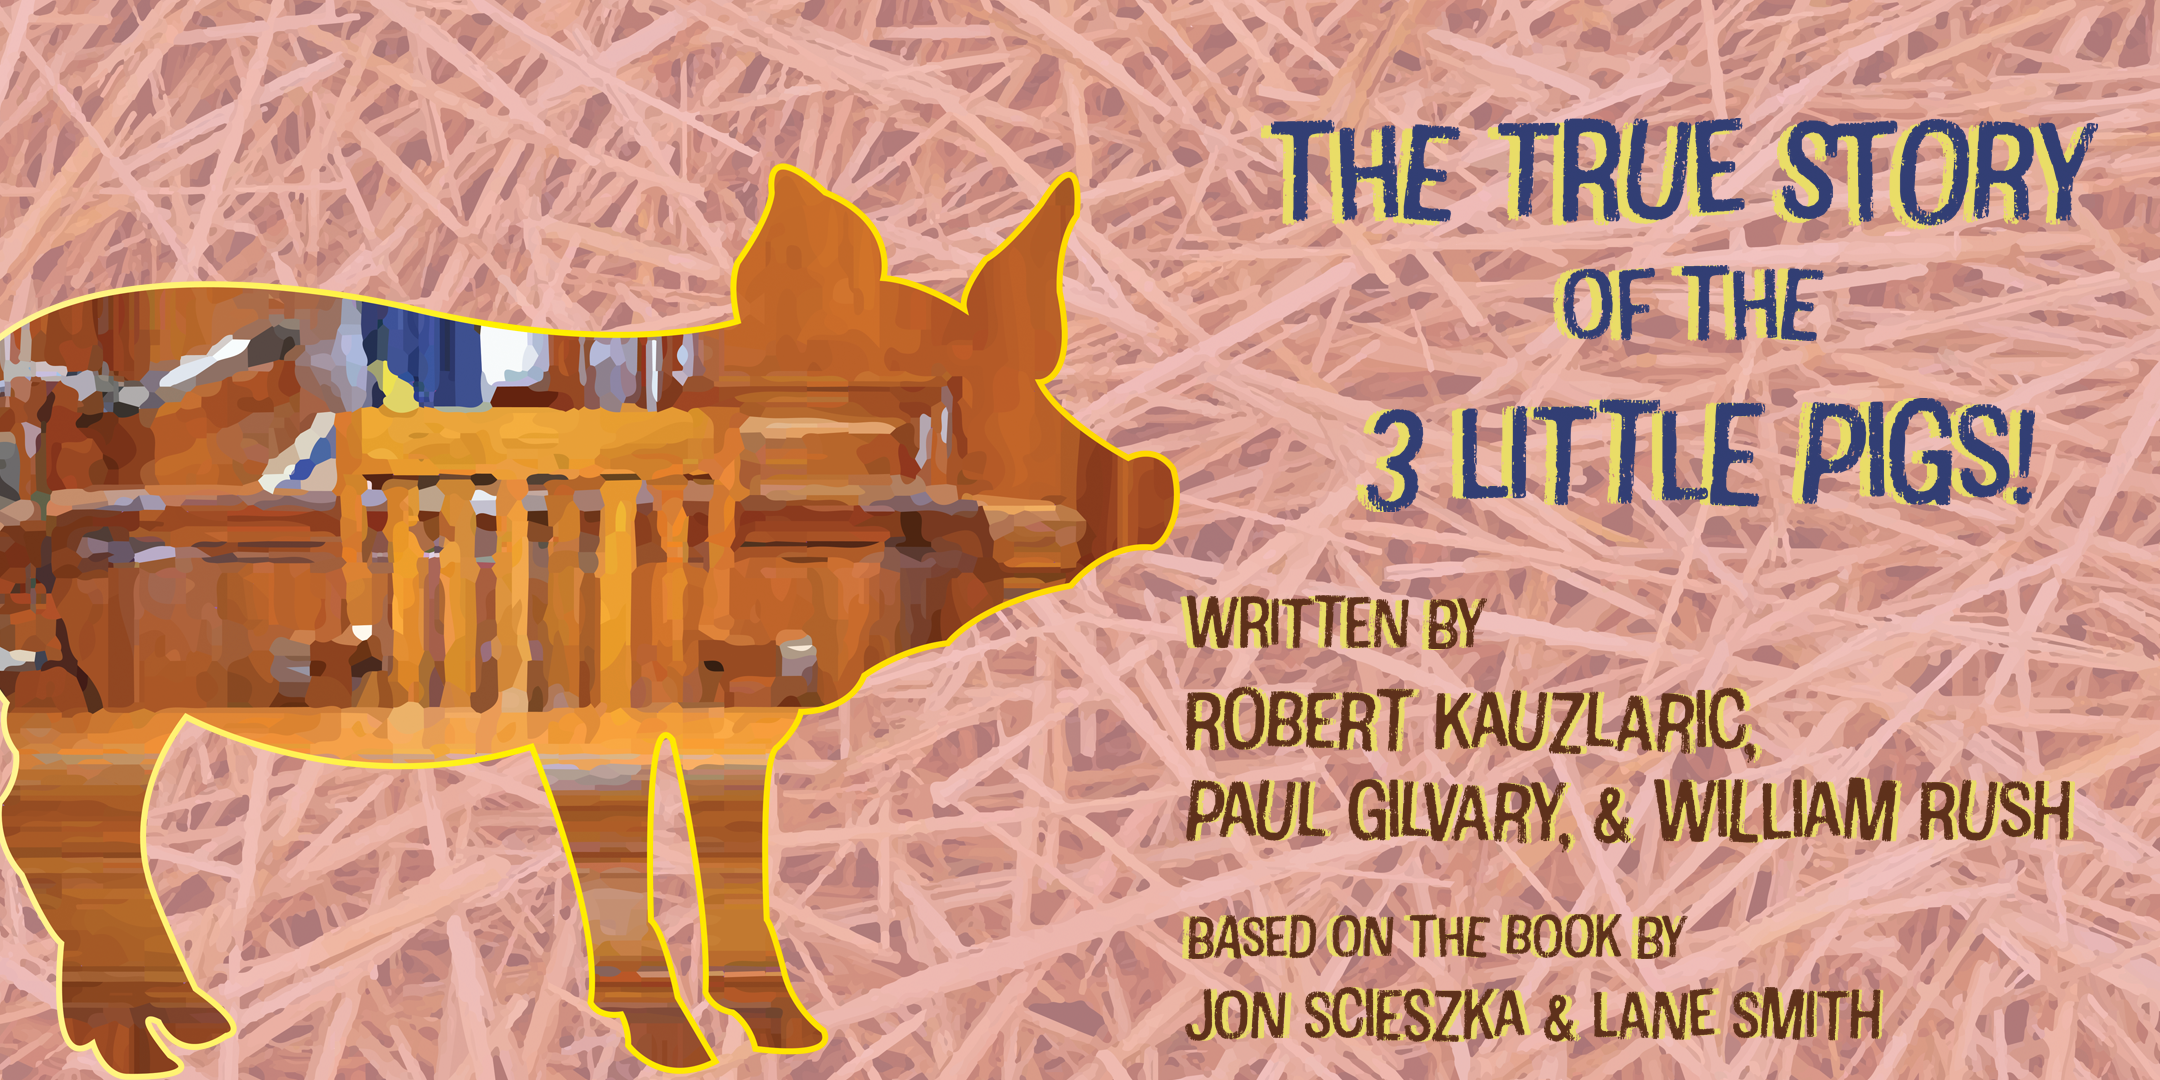 The True Story of the 3 Little Pigs - Saturday, March 28th